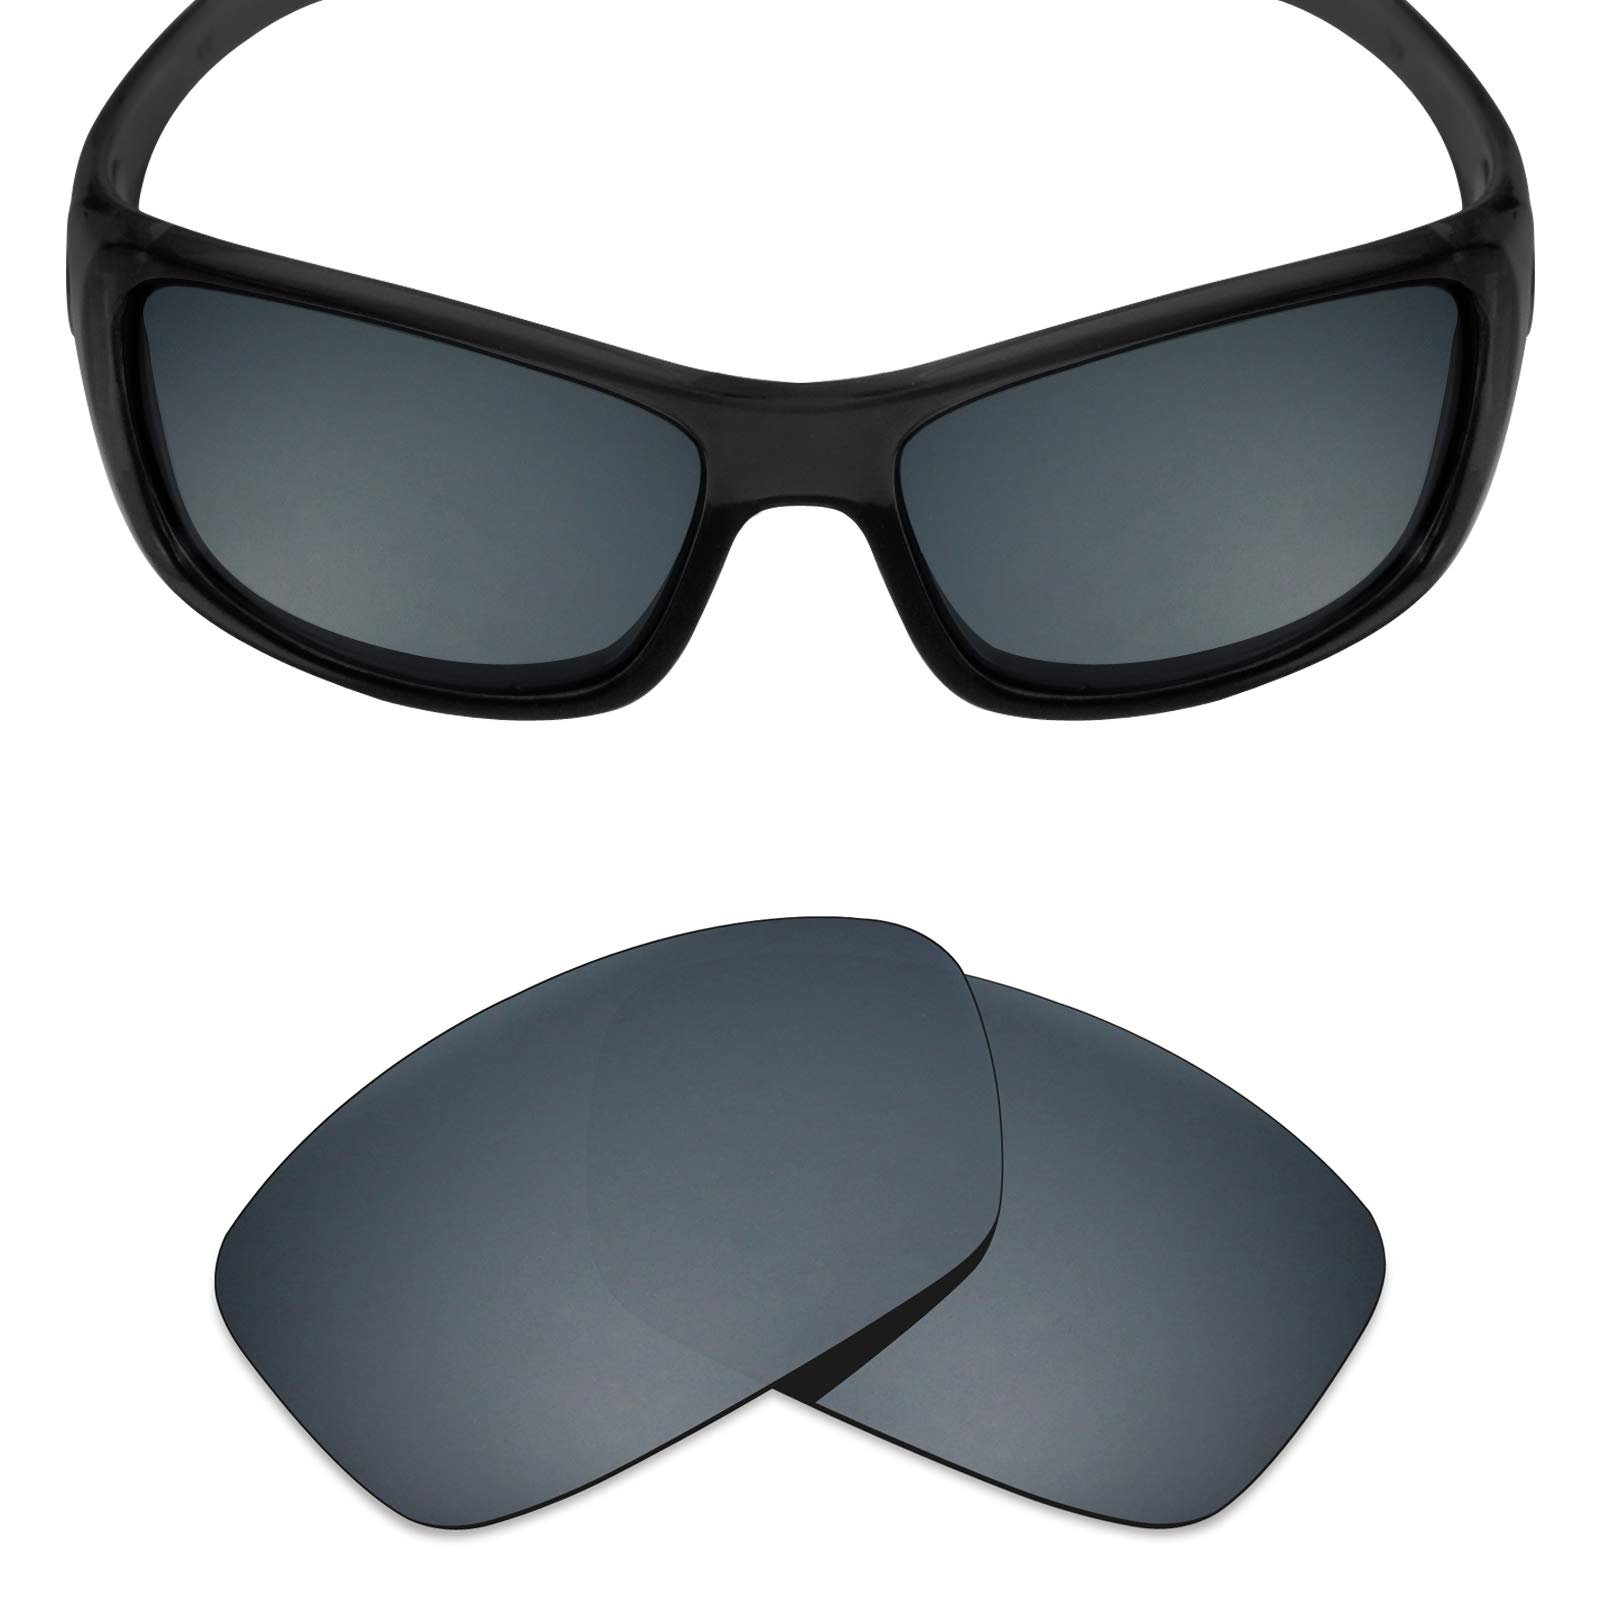 52840d7369 MRY Polarized Replacement Lenses for Oakley Hijinx Sunglasses - Multiple  Options product image